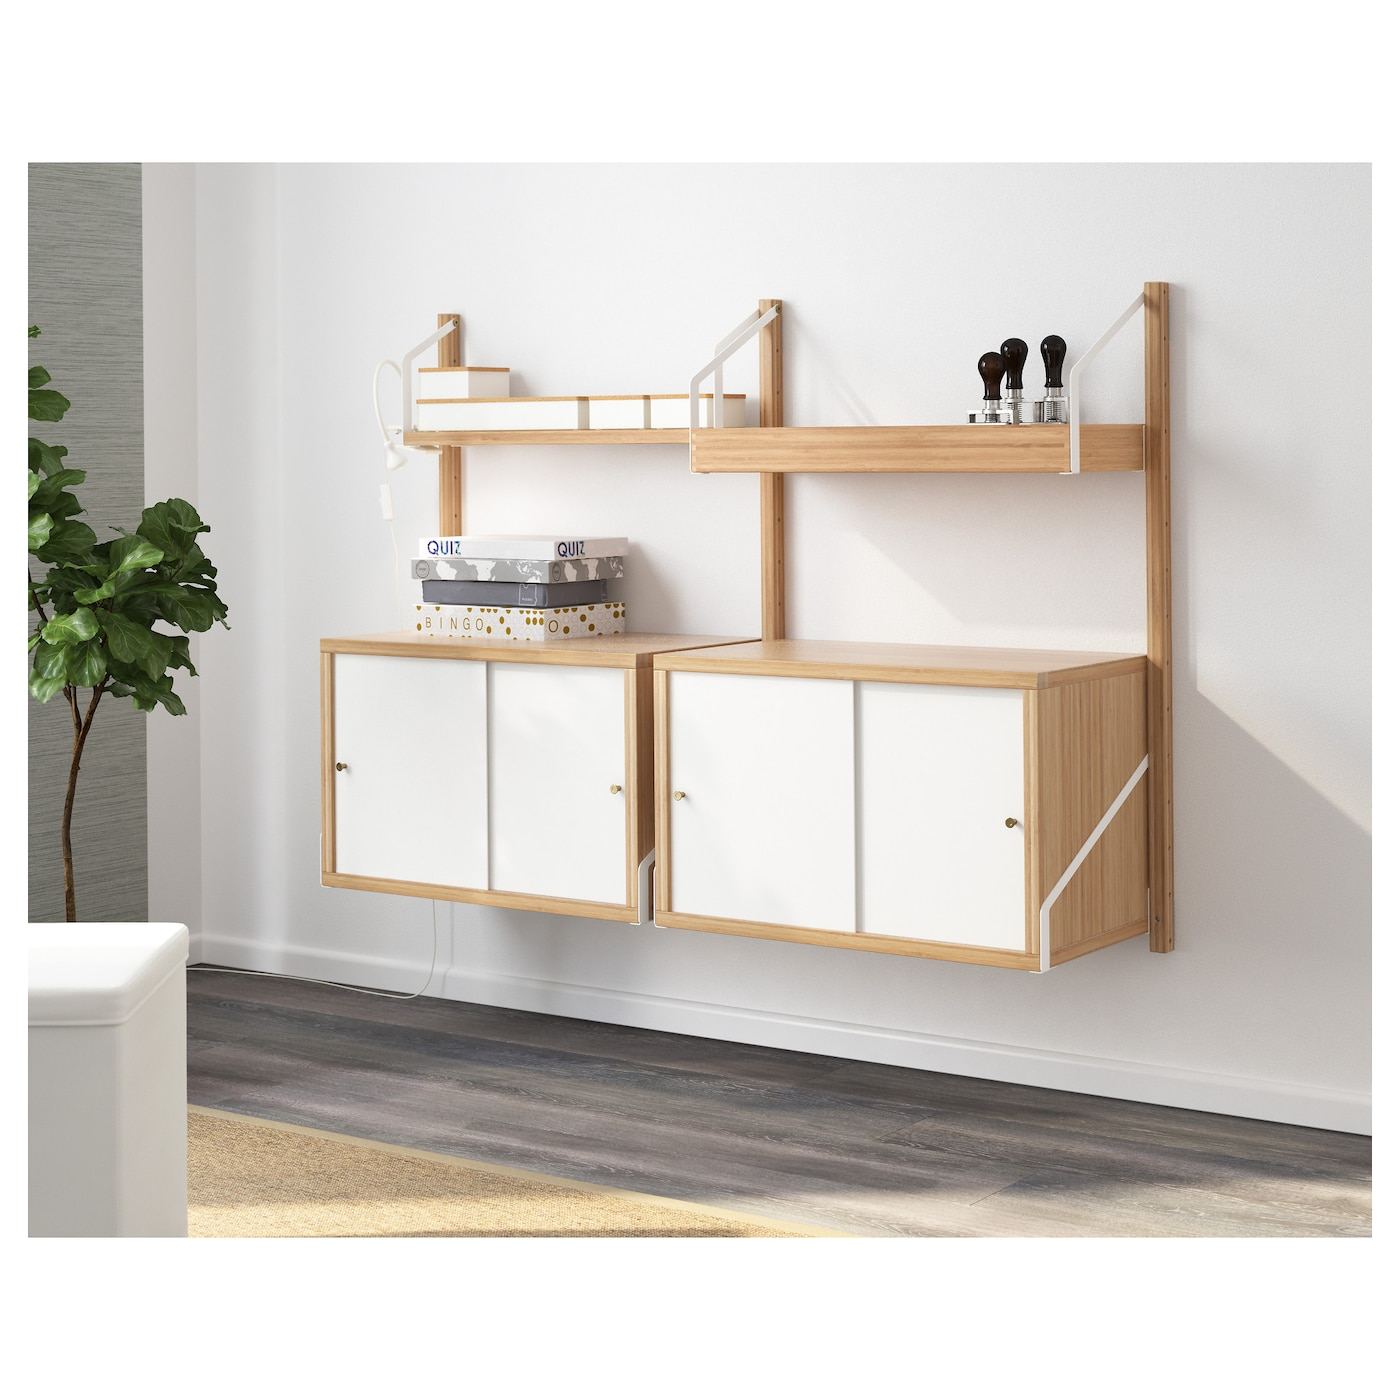 Exceptional IKEA SVALNÄS Wall Mounted Storage Combination